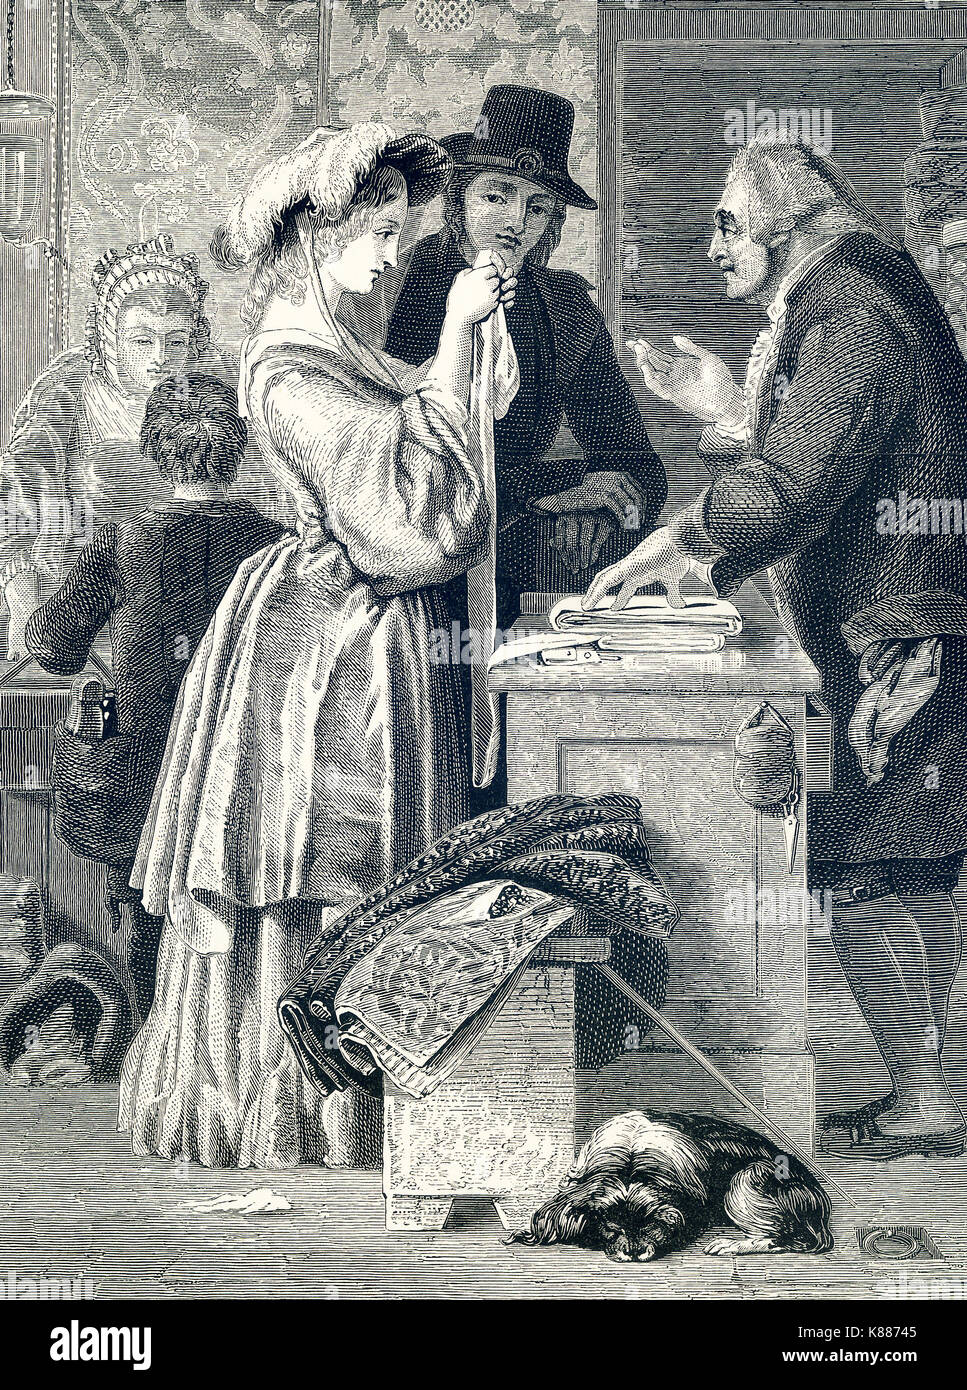 This engraving on wood accompanied an 1881 book on British Painters. The one is titled 'Choosing a Wedding Gown' and is credited to William Mulready (1786-1863), an Irish painter living in London. Mulready was known for his works that romanticized rural scenes. His paintings were popular in Victorian times. - Stock Image